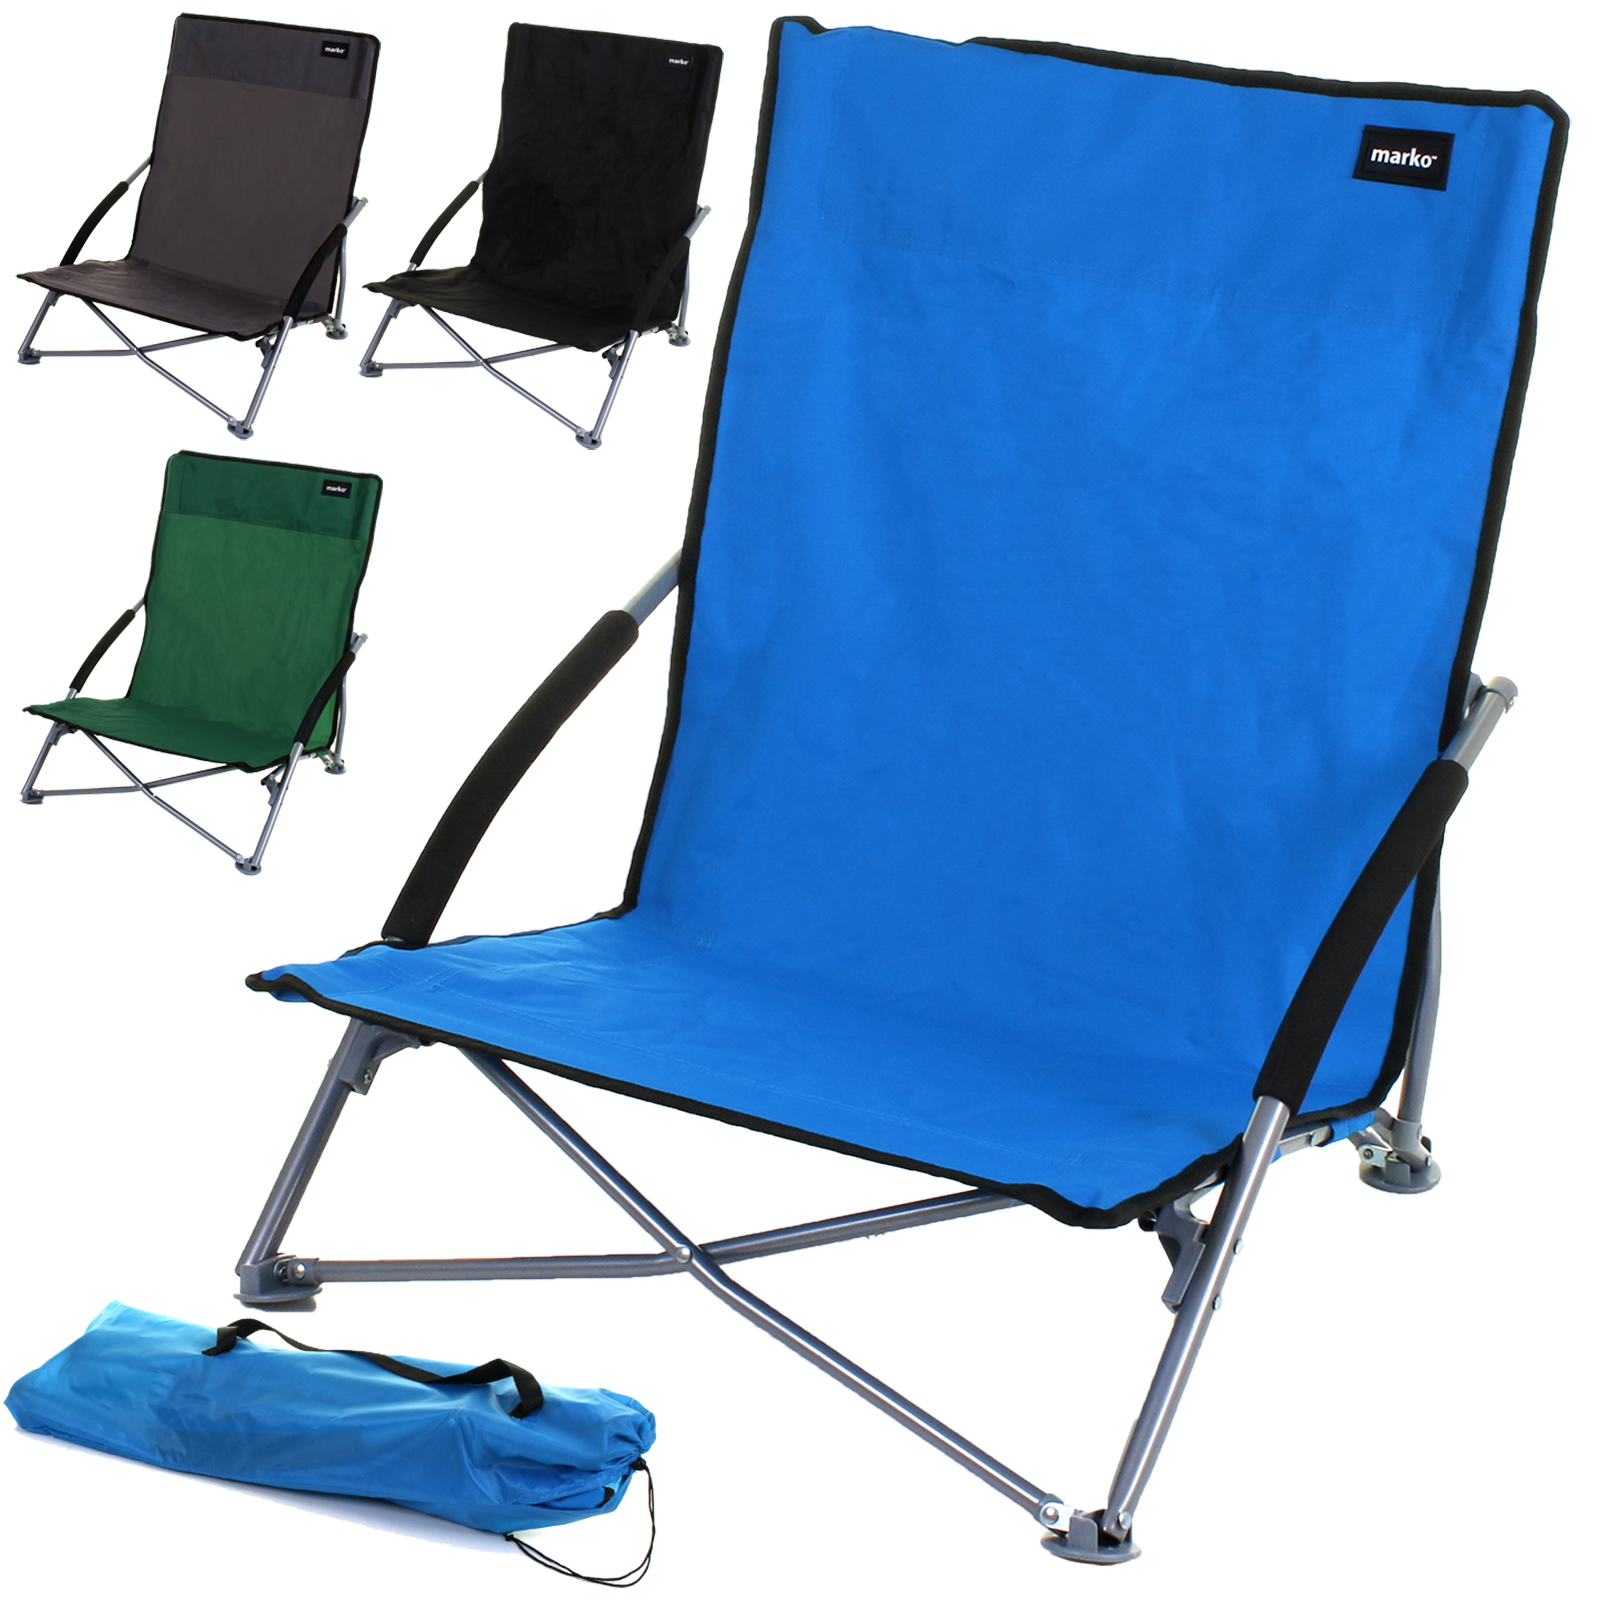 Details About Beach Chair Low Slung Folding Camping Festival Pool Picnic Deckchair Lounger New